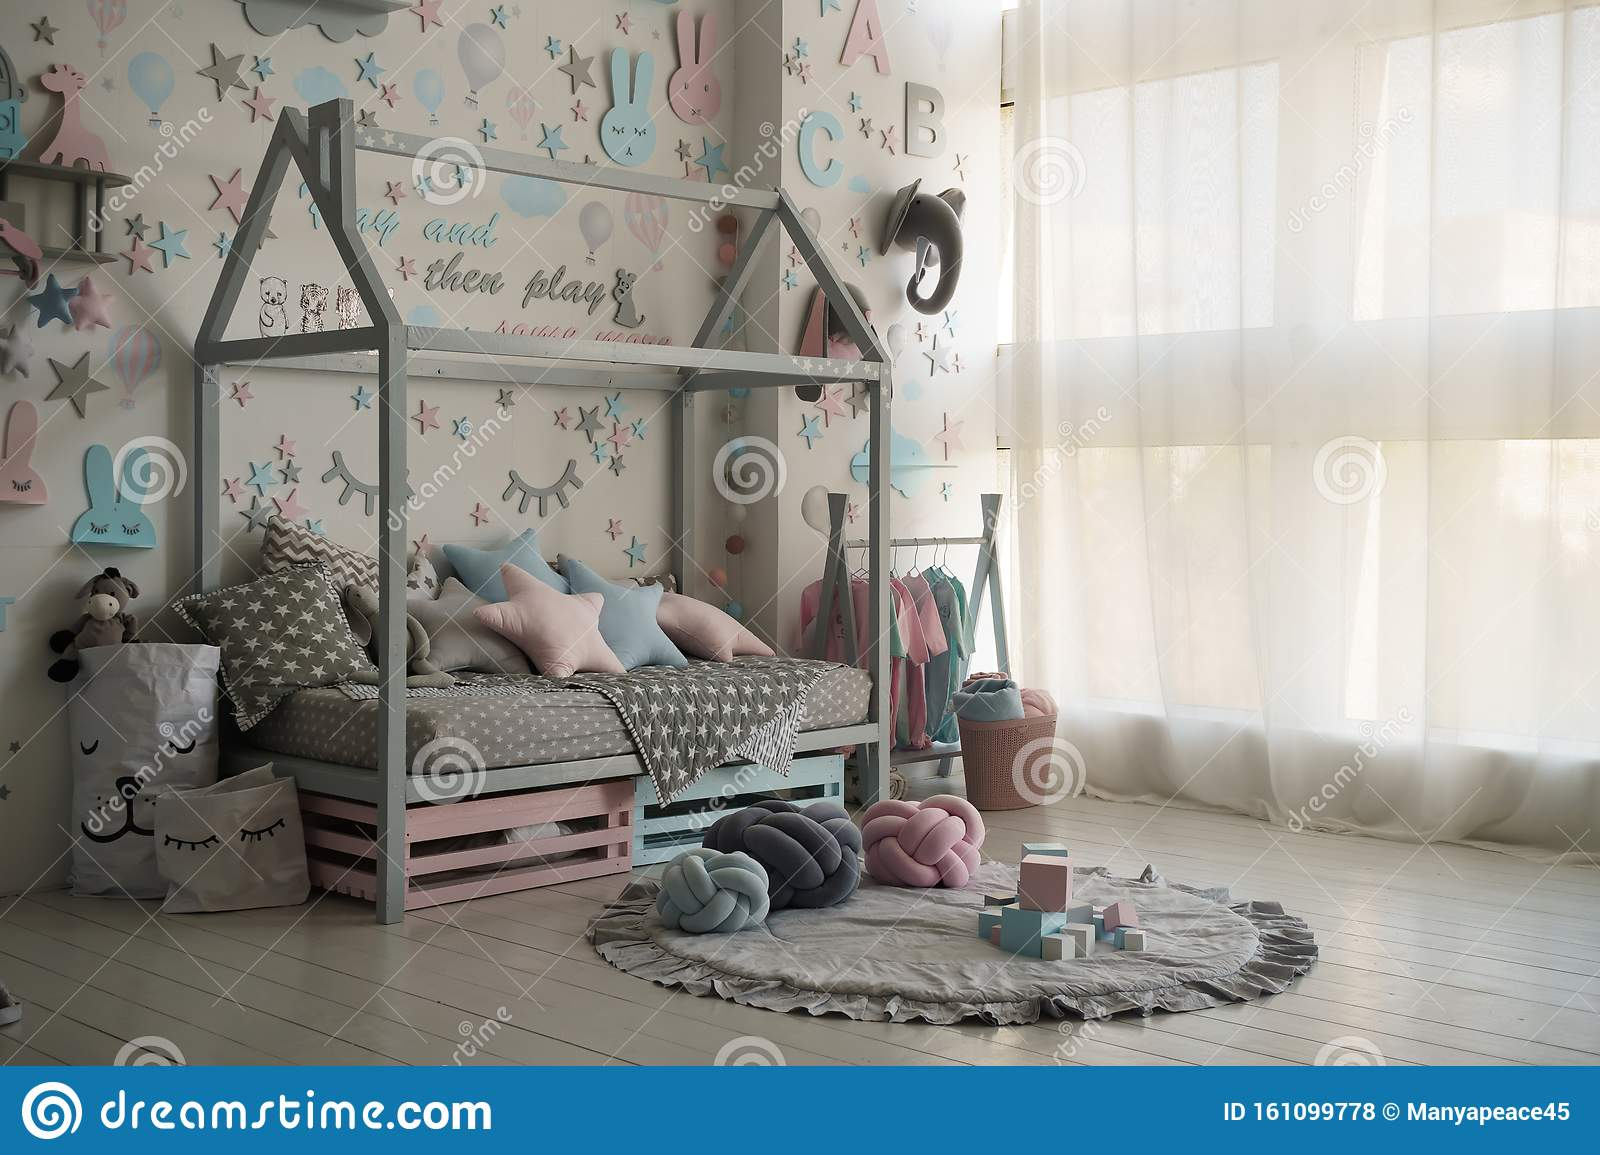 Kids Ideas Wooden Toy Box Push Walker Martin Heidegger Bedroom Ideas Color Palette Vintage Stock Photo Image Of Interior Calm 161099778